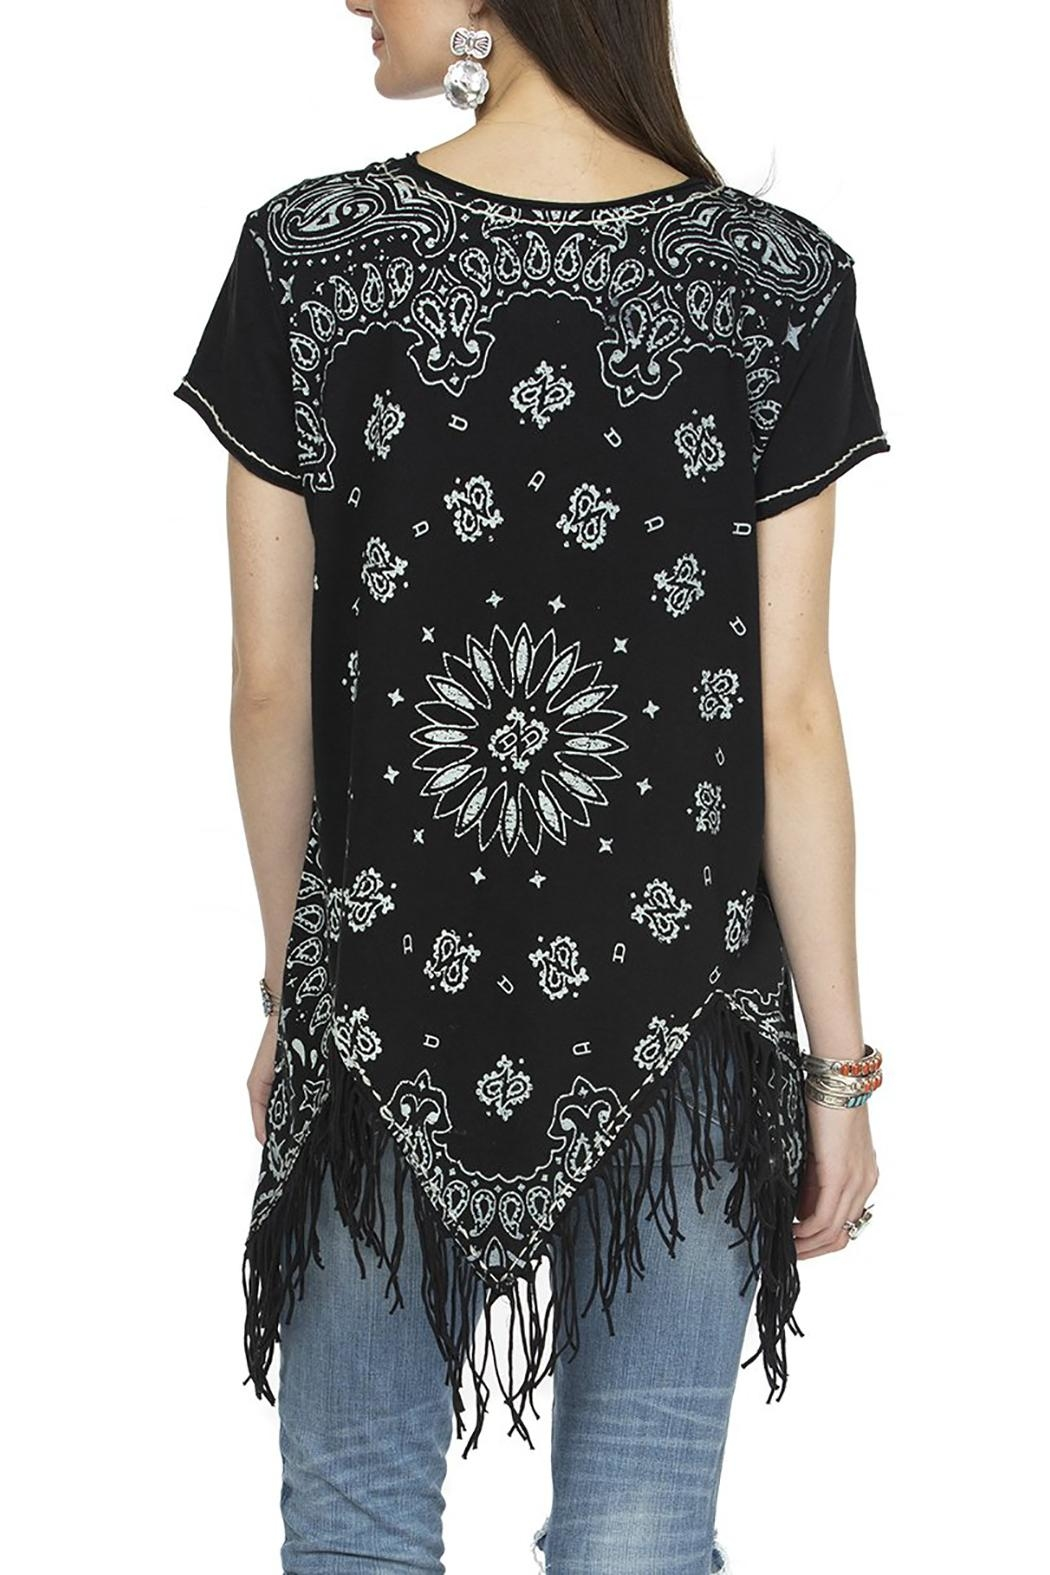 Double D Ranchwear July Bandana Top - Front Full Image